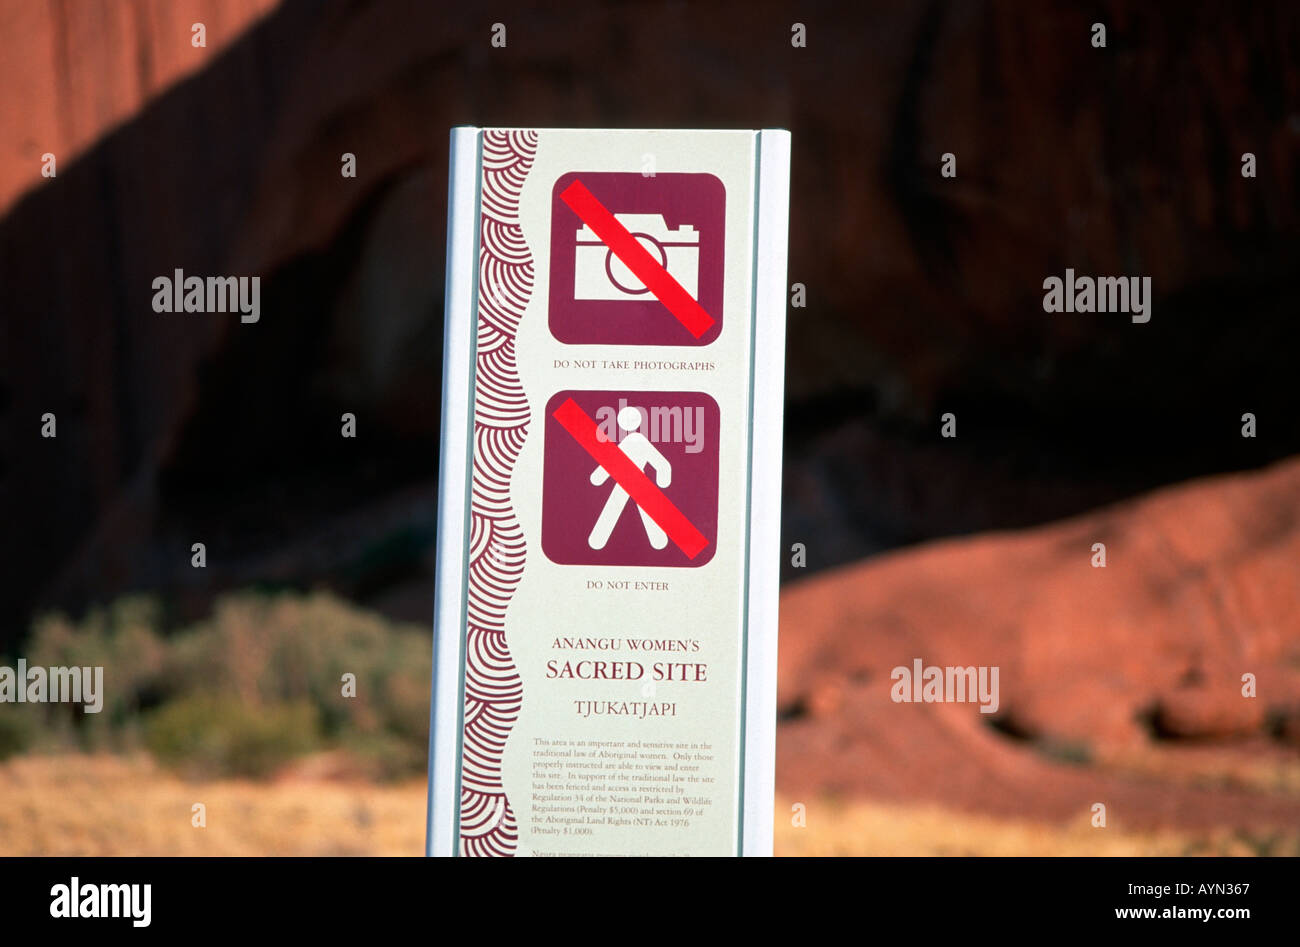 No pictures. Do not take photographs. Anangu women's sacred site Tjukatjapi at the base of Uluru Ayers Rock. - Stock Image